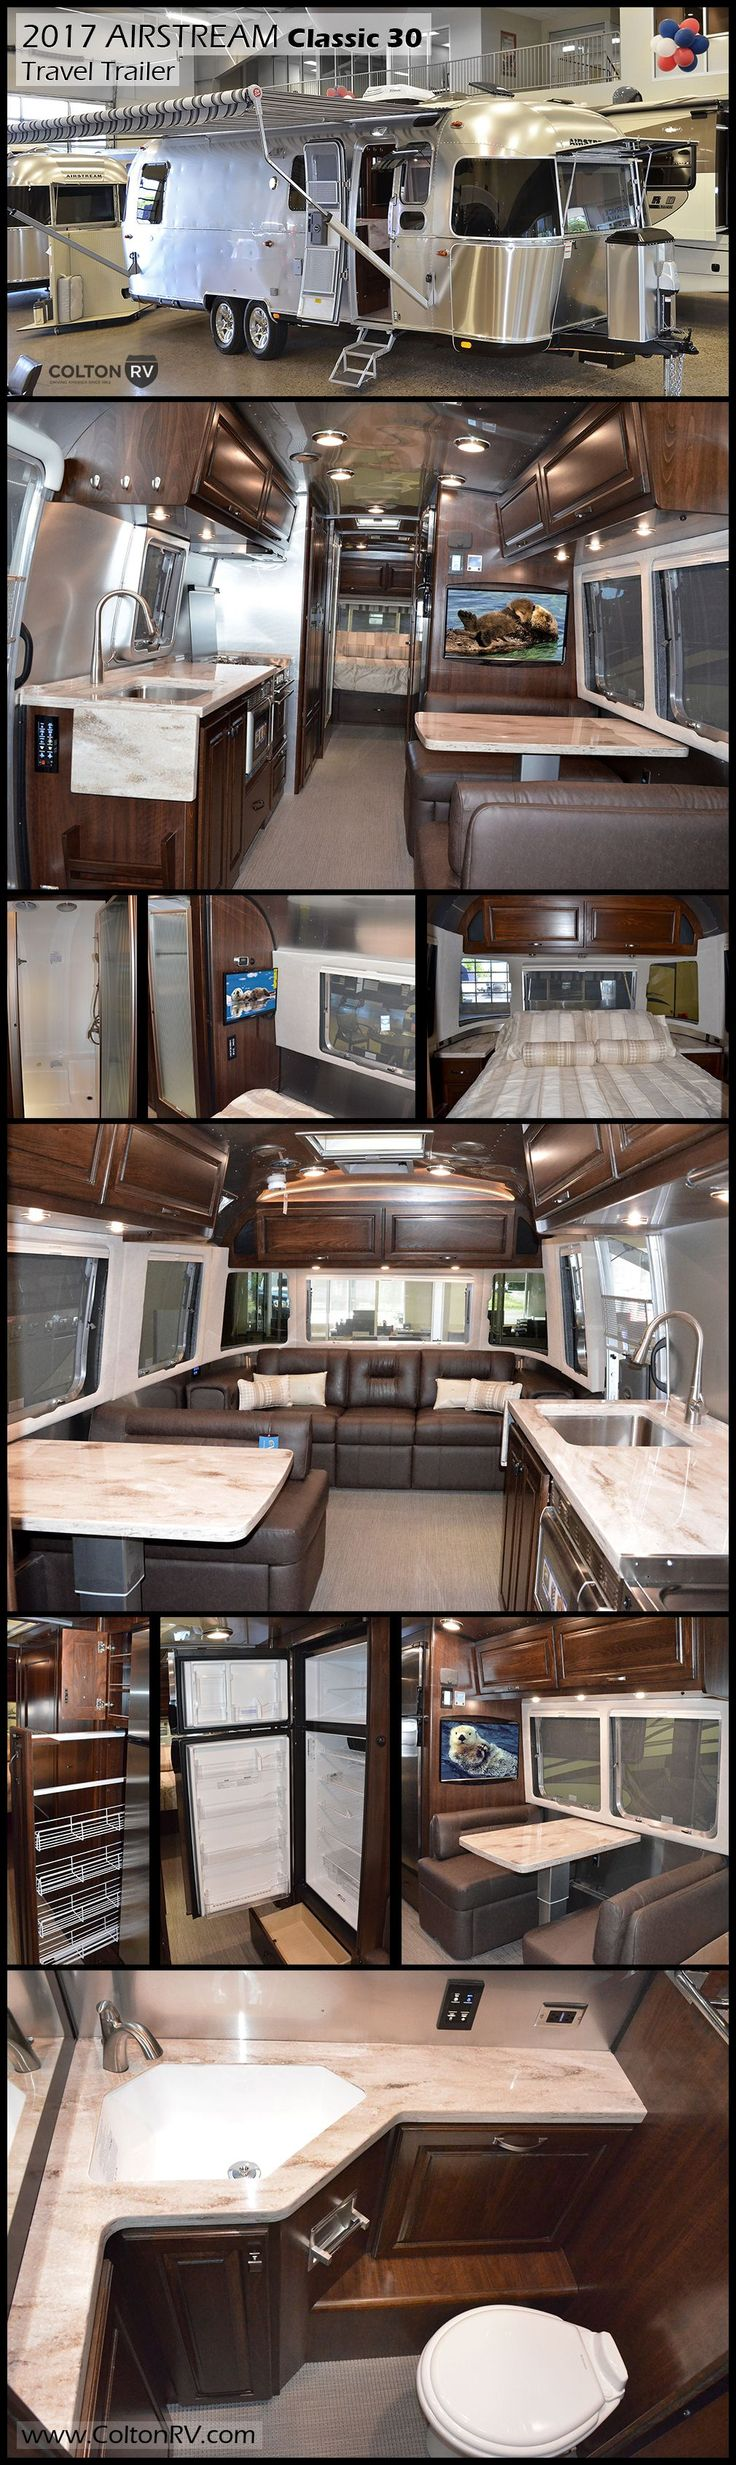 This Airstream Classic 30 travel trailer is designed for long-term adventurers or full-time living. Inside you'll find abundant storage, elegant design, private sleeping quarters and spacious living areas. The central kitchen has everything you need to refuel from the fun!  With convertible furnishings, you can sleep up to 5 campers comfortably.